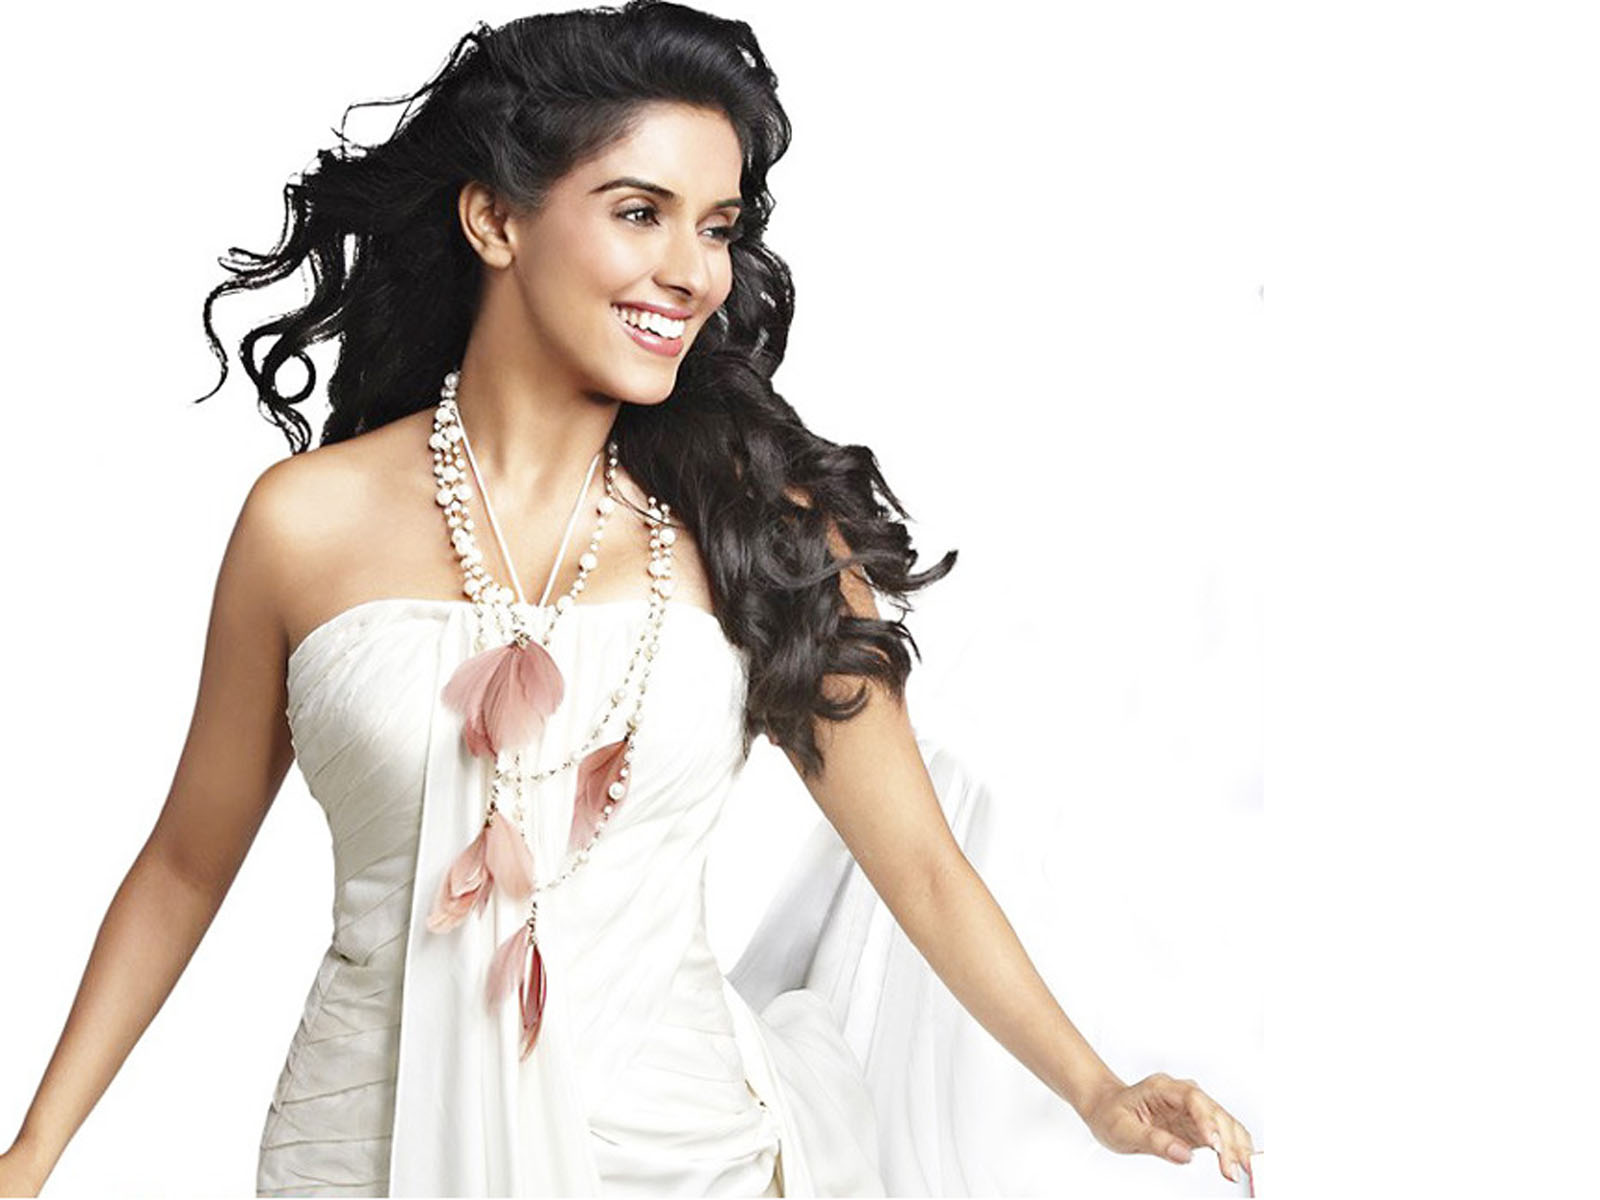 Asin Hd Wallpapers Asin Biography Bollywood Actress Photos: Asin Hot & Sizzling In Bikini Pictures Photos Downloads